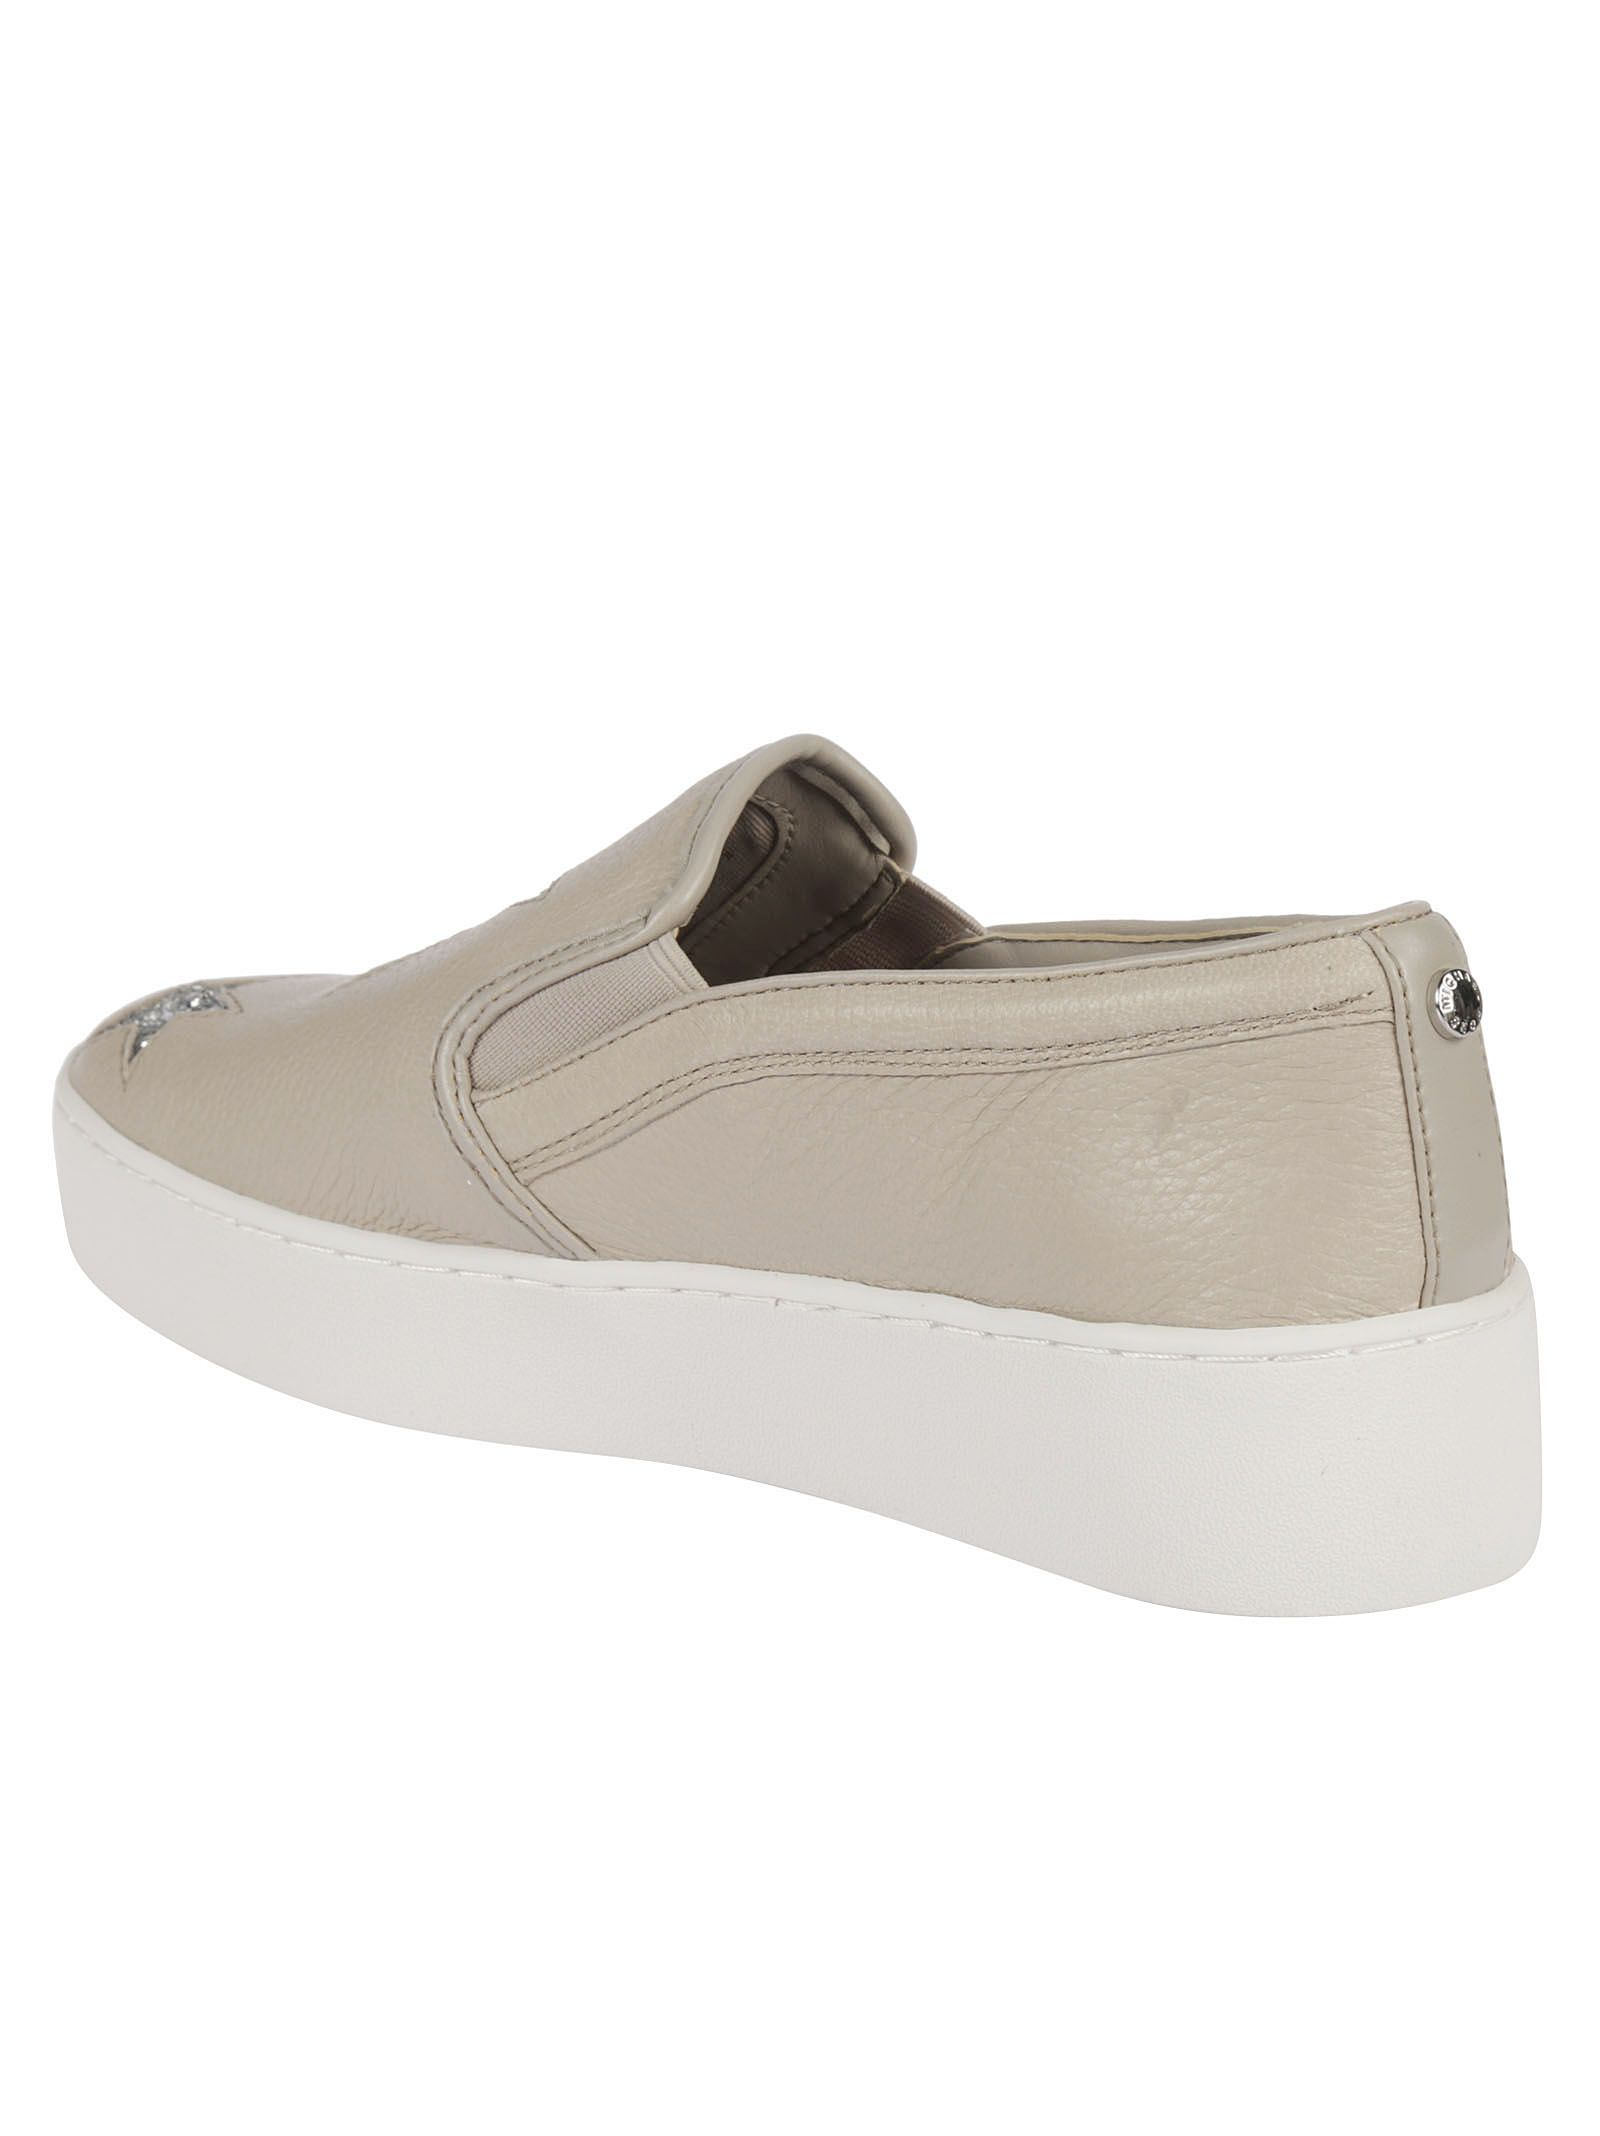 c5578baf22a7a ... MICHAEL Michael Kors Pia Slip-on Star Sneakers - Cement